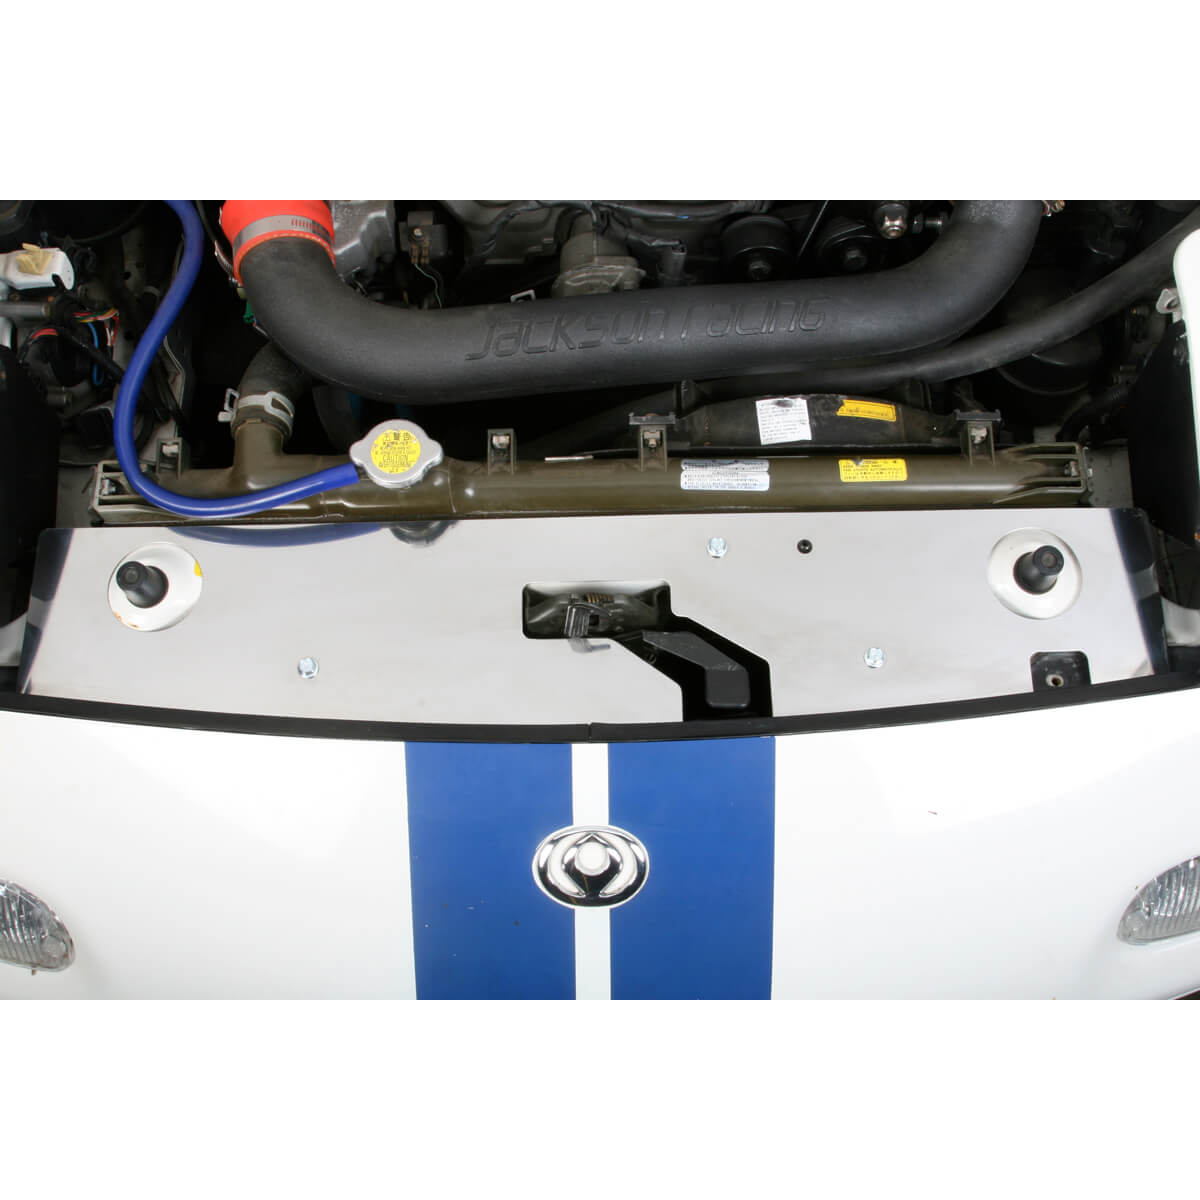 Windshield Cowl Cover By Garagestar Accents Satin Brushed 1990 Mazda Miata Fuse Box Radiator Tourist Trophy